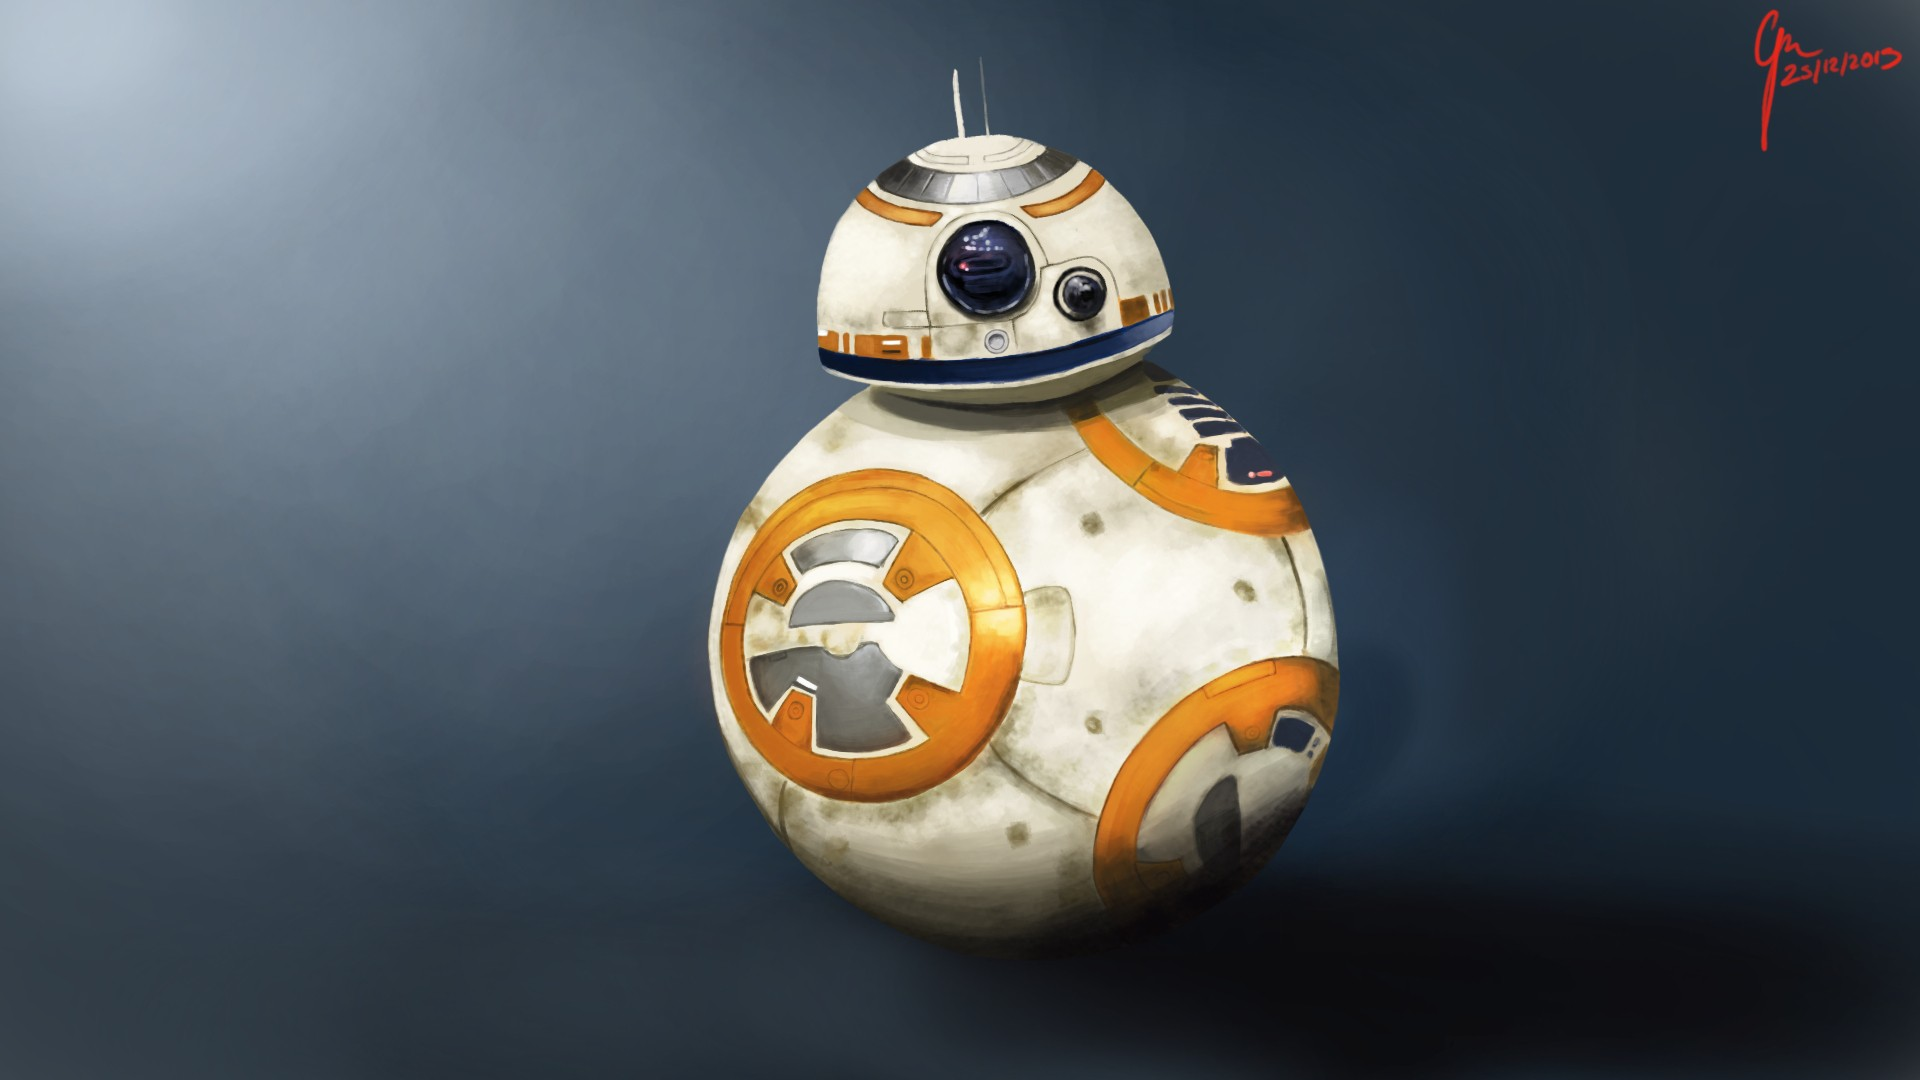 BB 8 wallpaper ·① Download free stunning backgrounds for